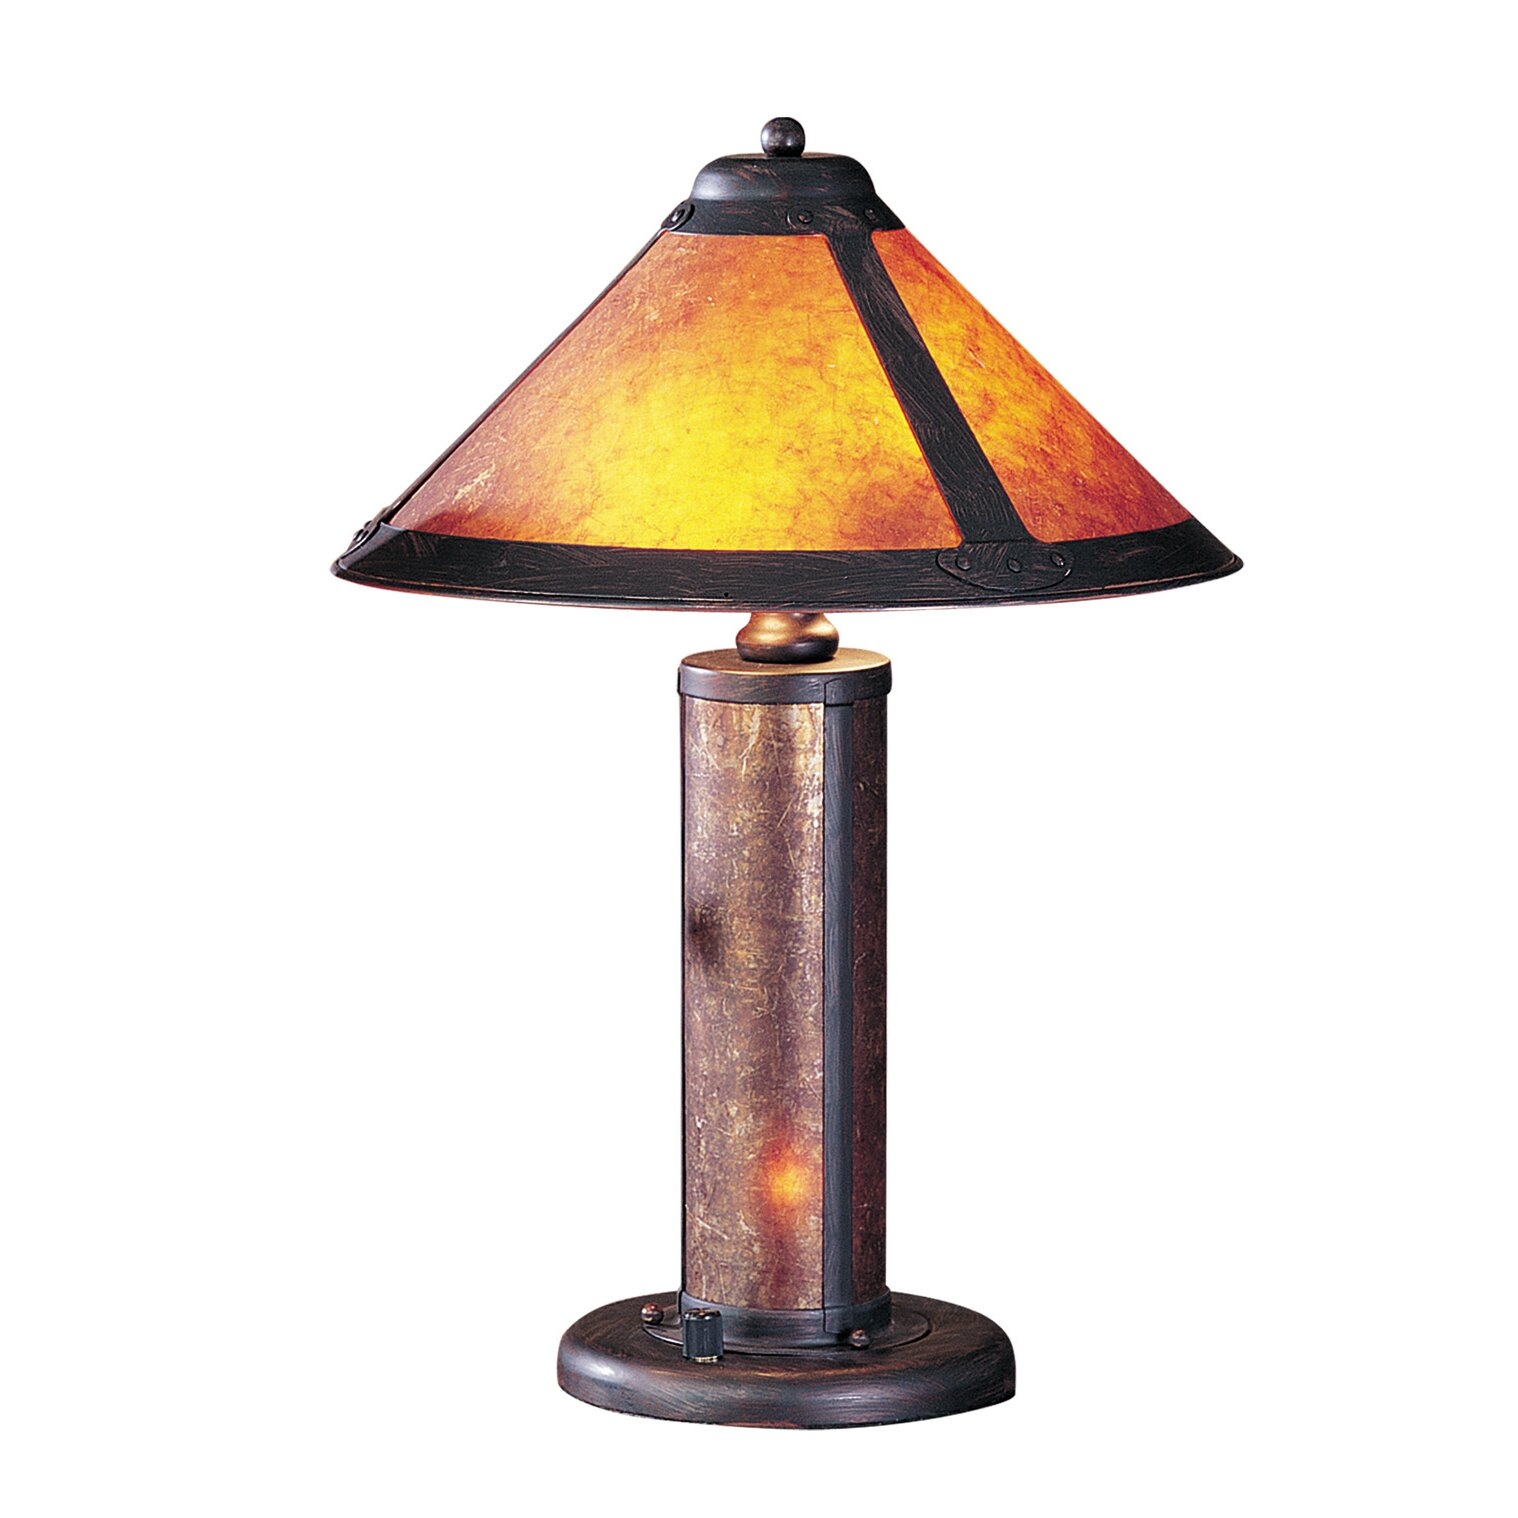 cal lighting accent 20 h table lamp with cone shade reviews. Black Bedroom Furniture Sets. Home Design Ideas